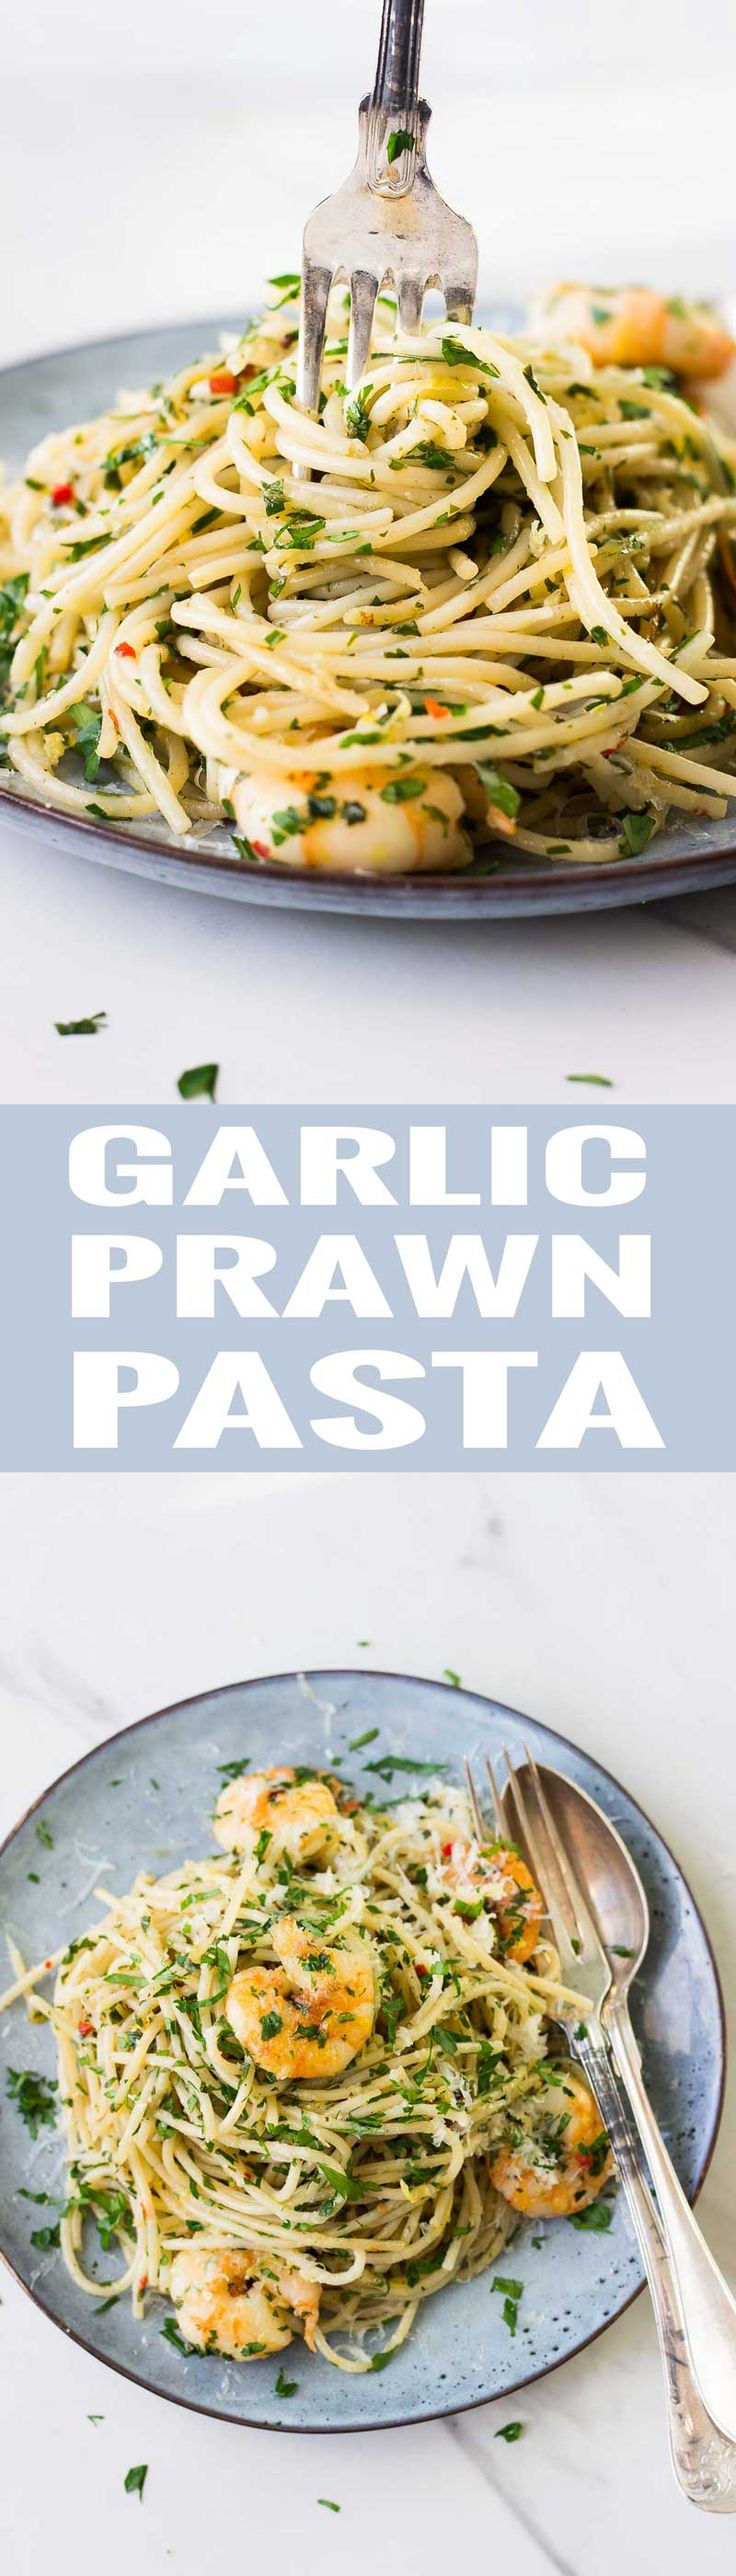 Garlic Prawn Pasta Recipe! Super easy to make and packed with flavour! Ready in less than 20 minutes! Can be both #glutenfree & #dairyfree  #garlic #prawn #pasta  via @nutrimeetschef